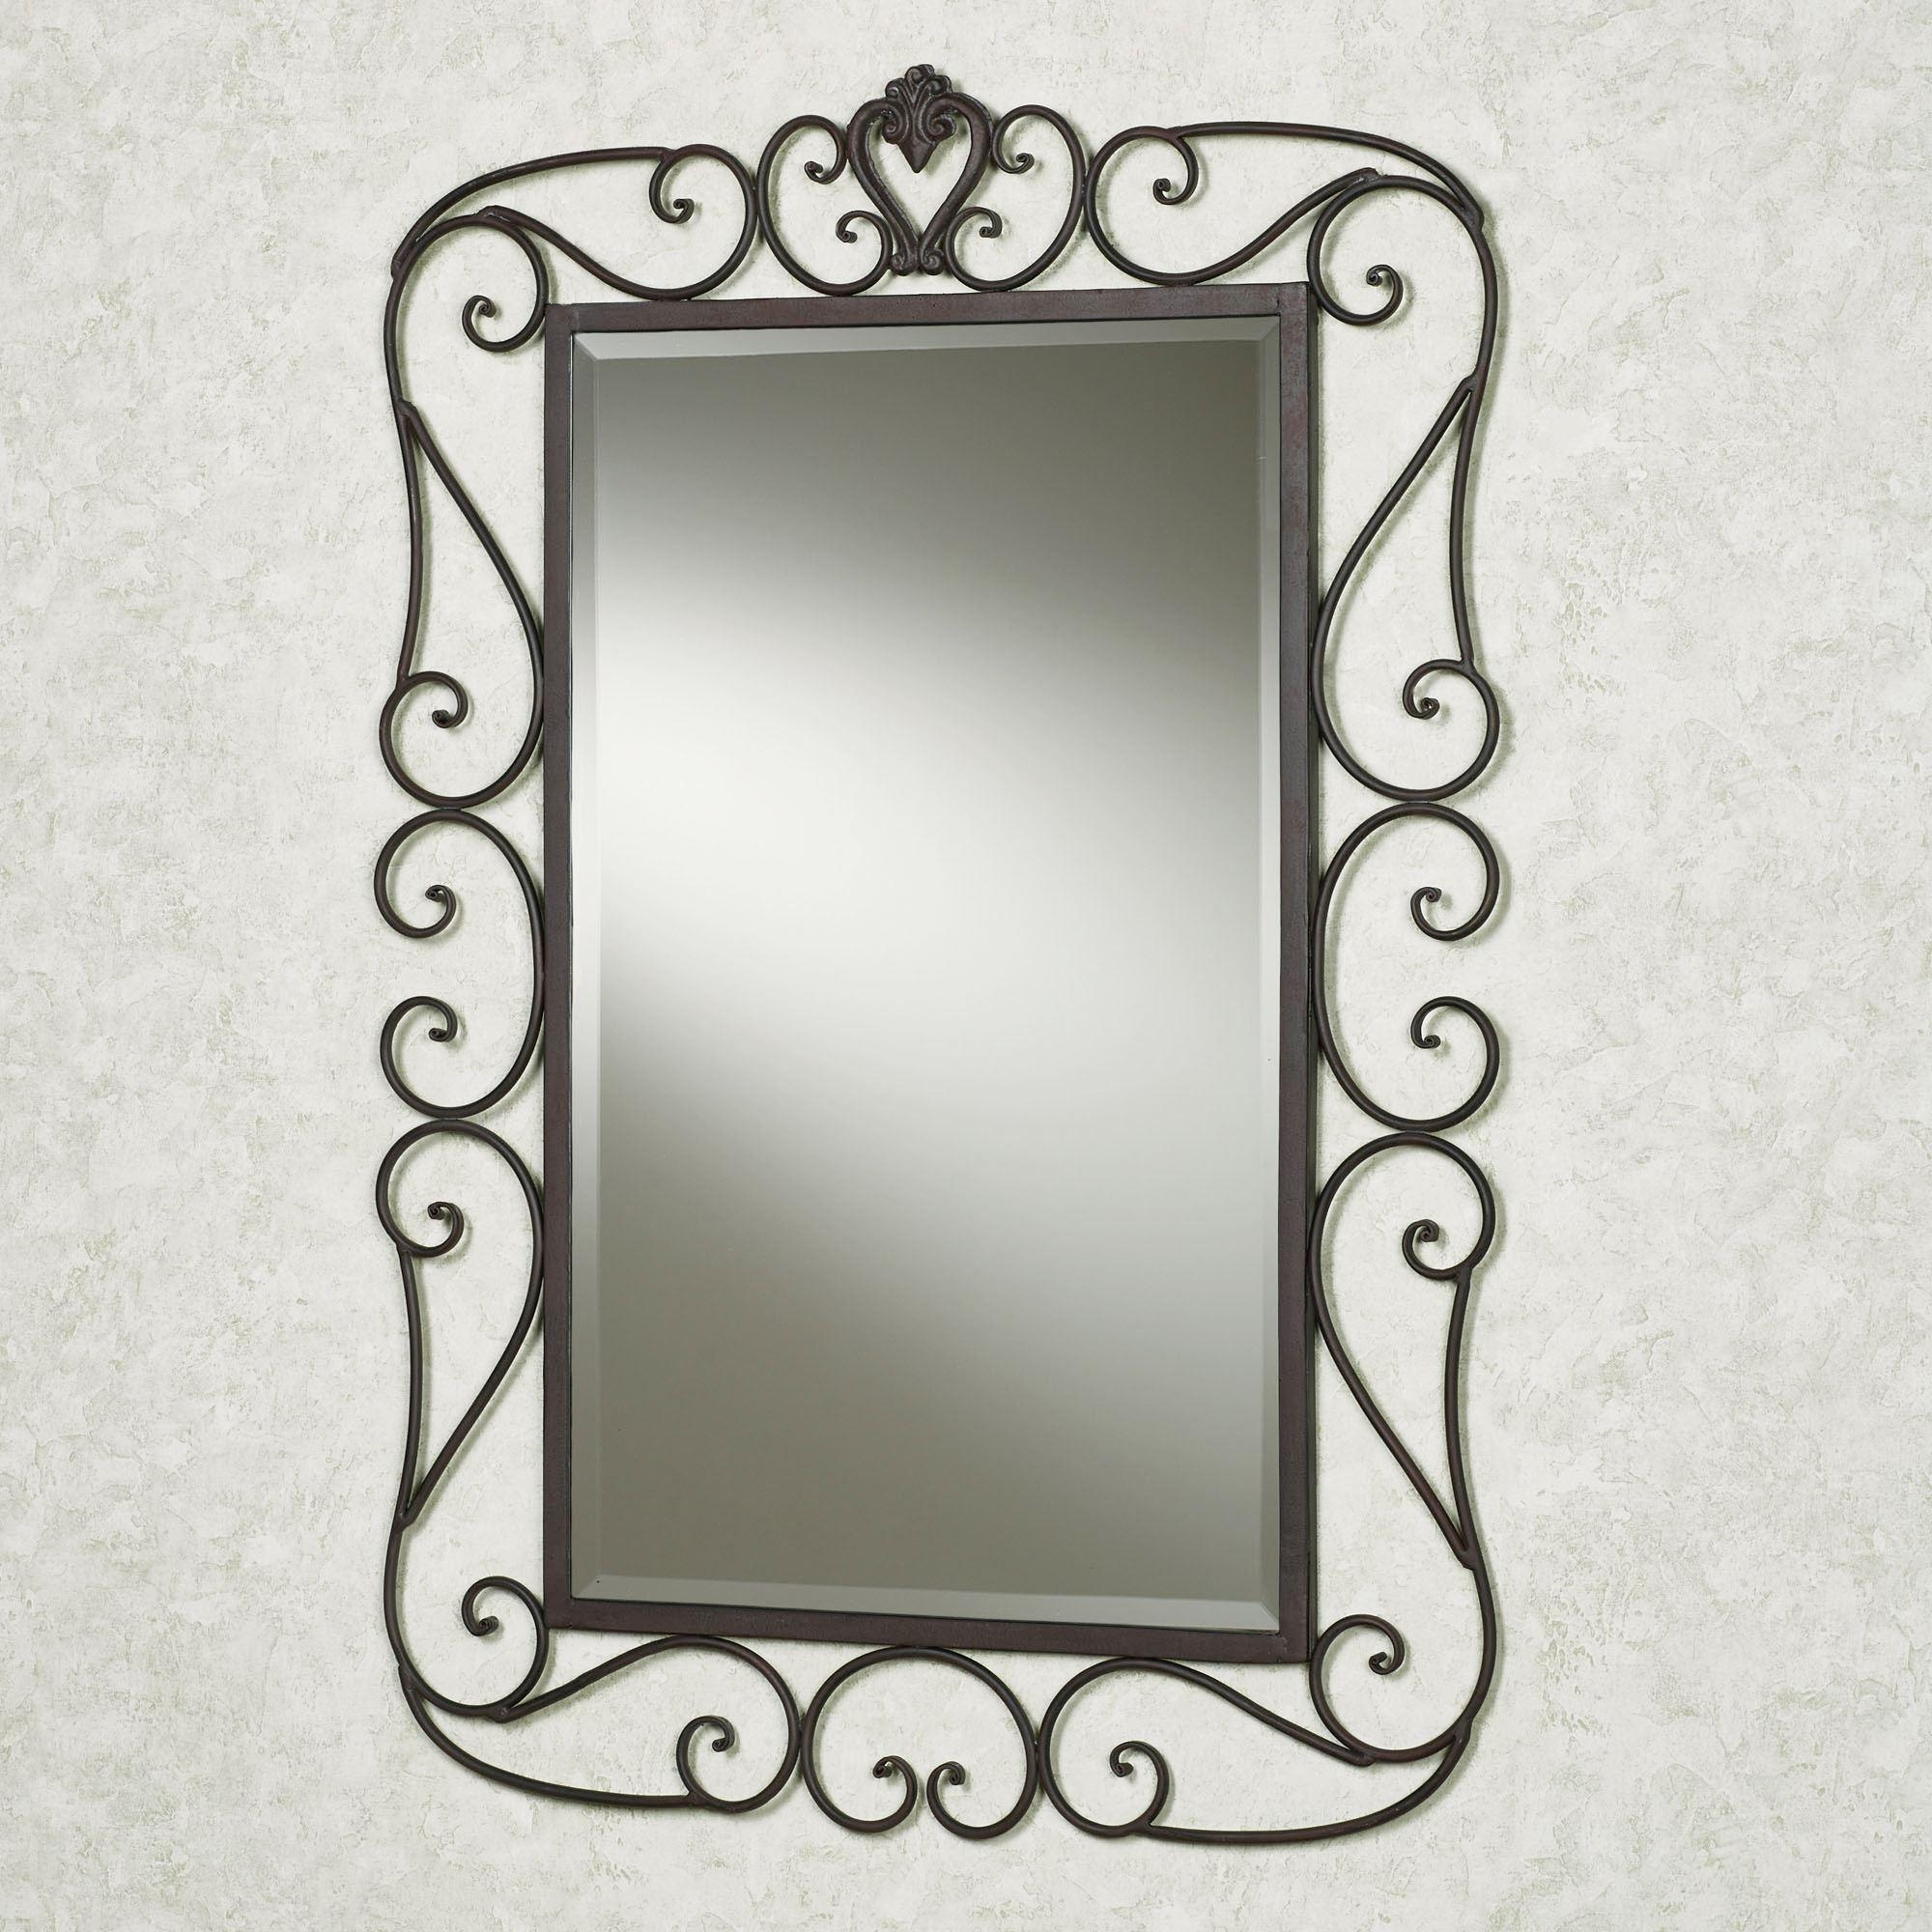 Featured Image of Wrought Iron Bathroom Mirrors